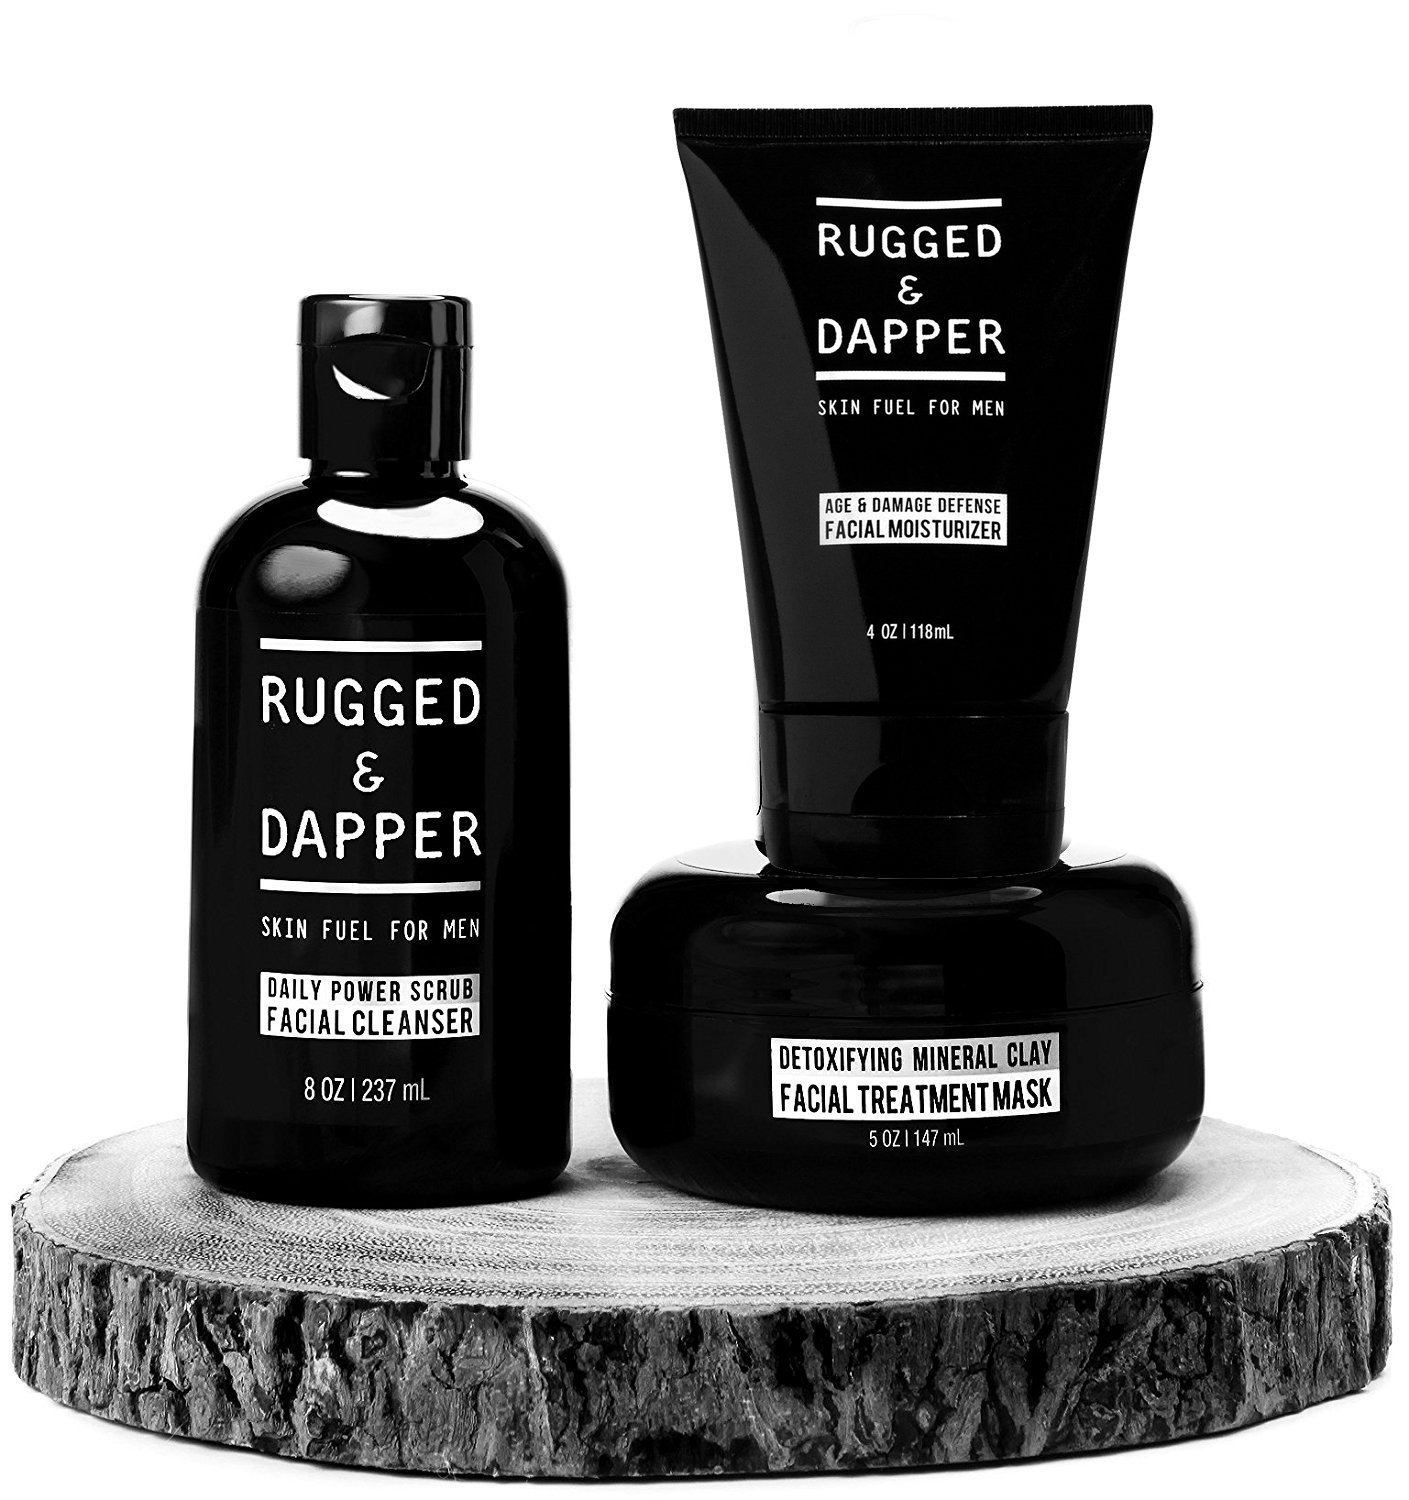 RUGGED & DAPPER All-In-One Essential Skincare Set for Men, Kit Includes Daily Facial Scrub Cleanser, Moisturizer Aftershave Lotion and Detox Face Mask